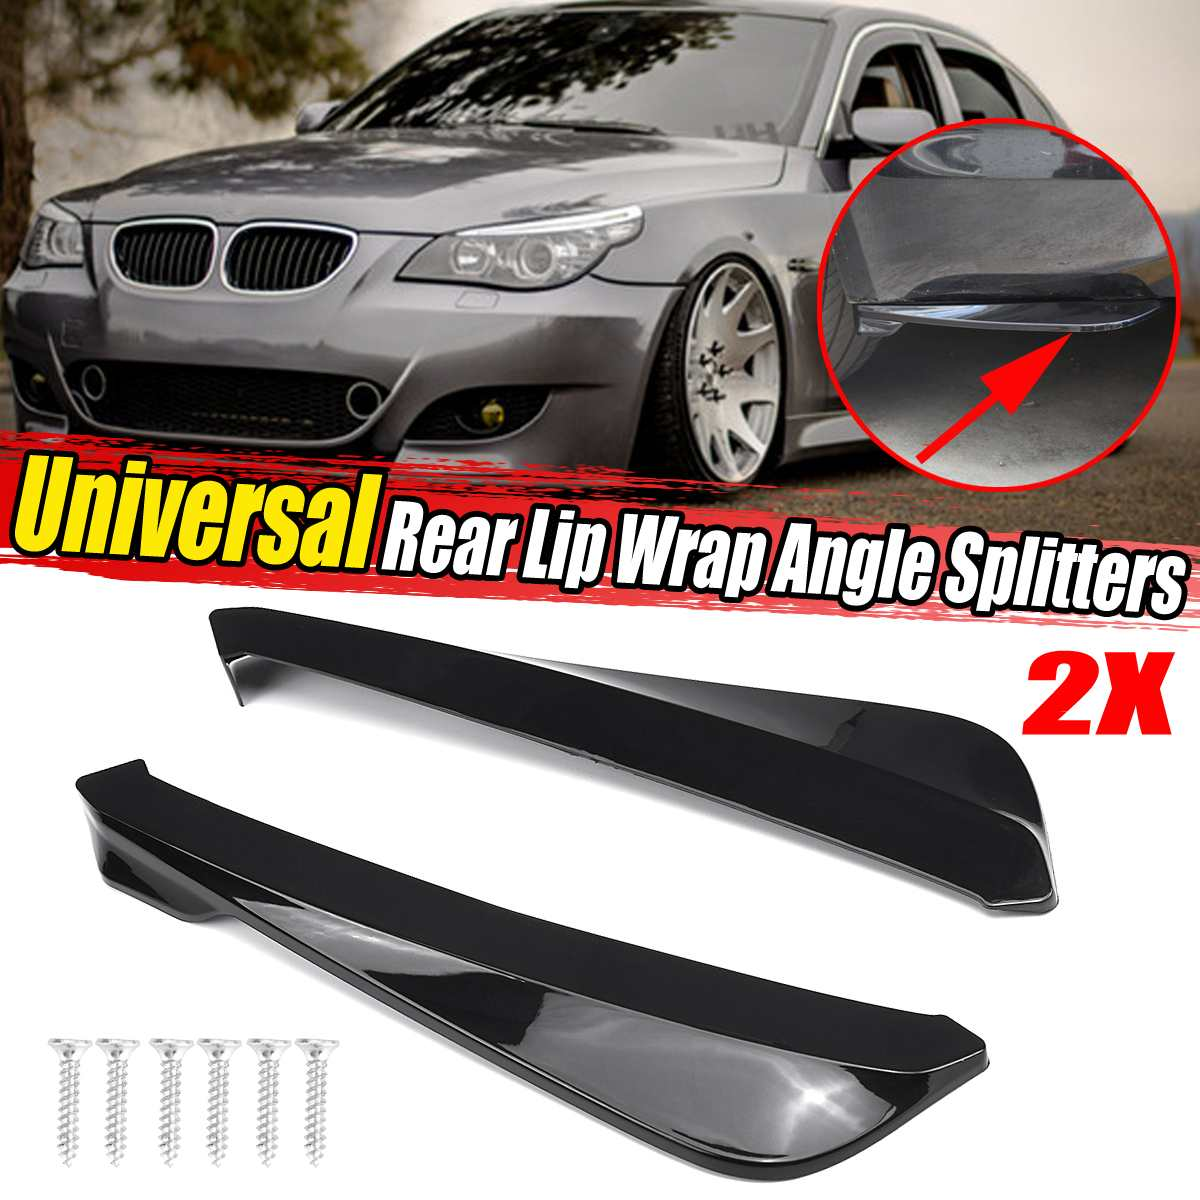 Universal Car Rear Bumper Lip Diffuser Splitter Spoiler Scratch Protector For BMW E90 E92 For LEXUS For Subaru For Infiniti Q50 image